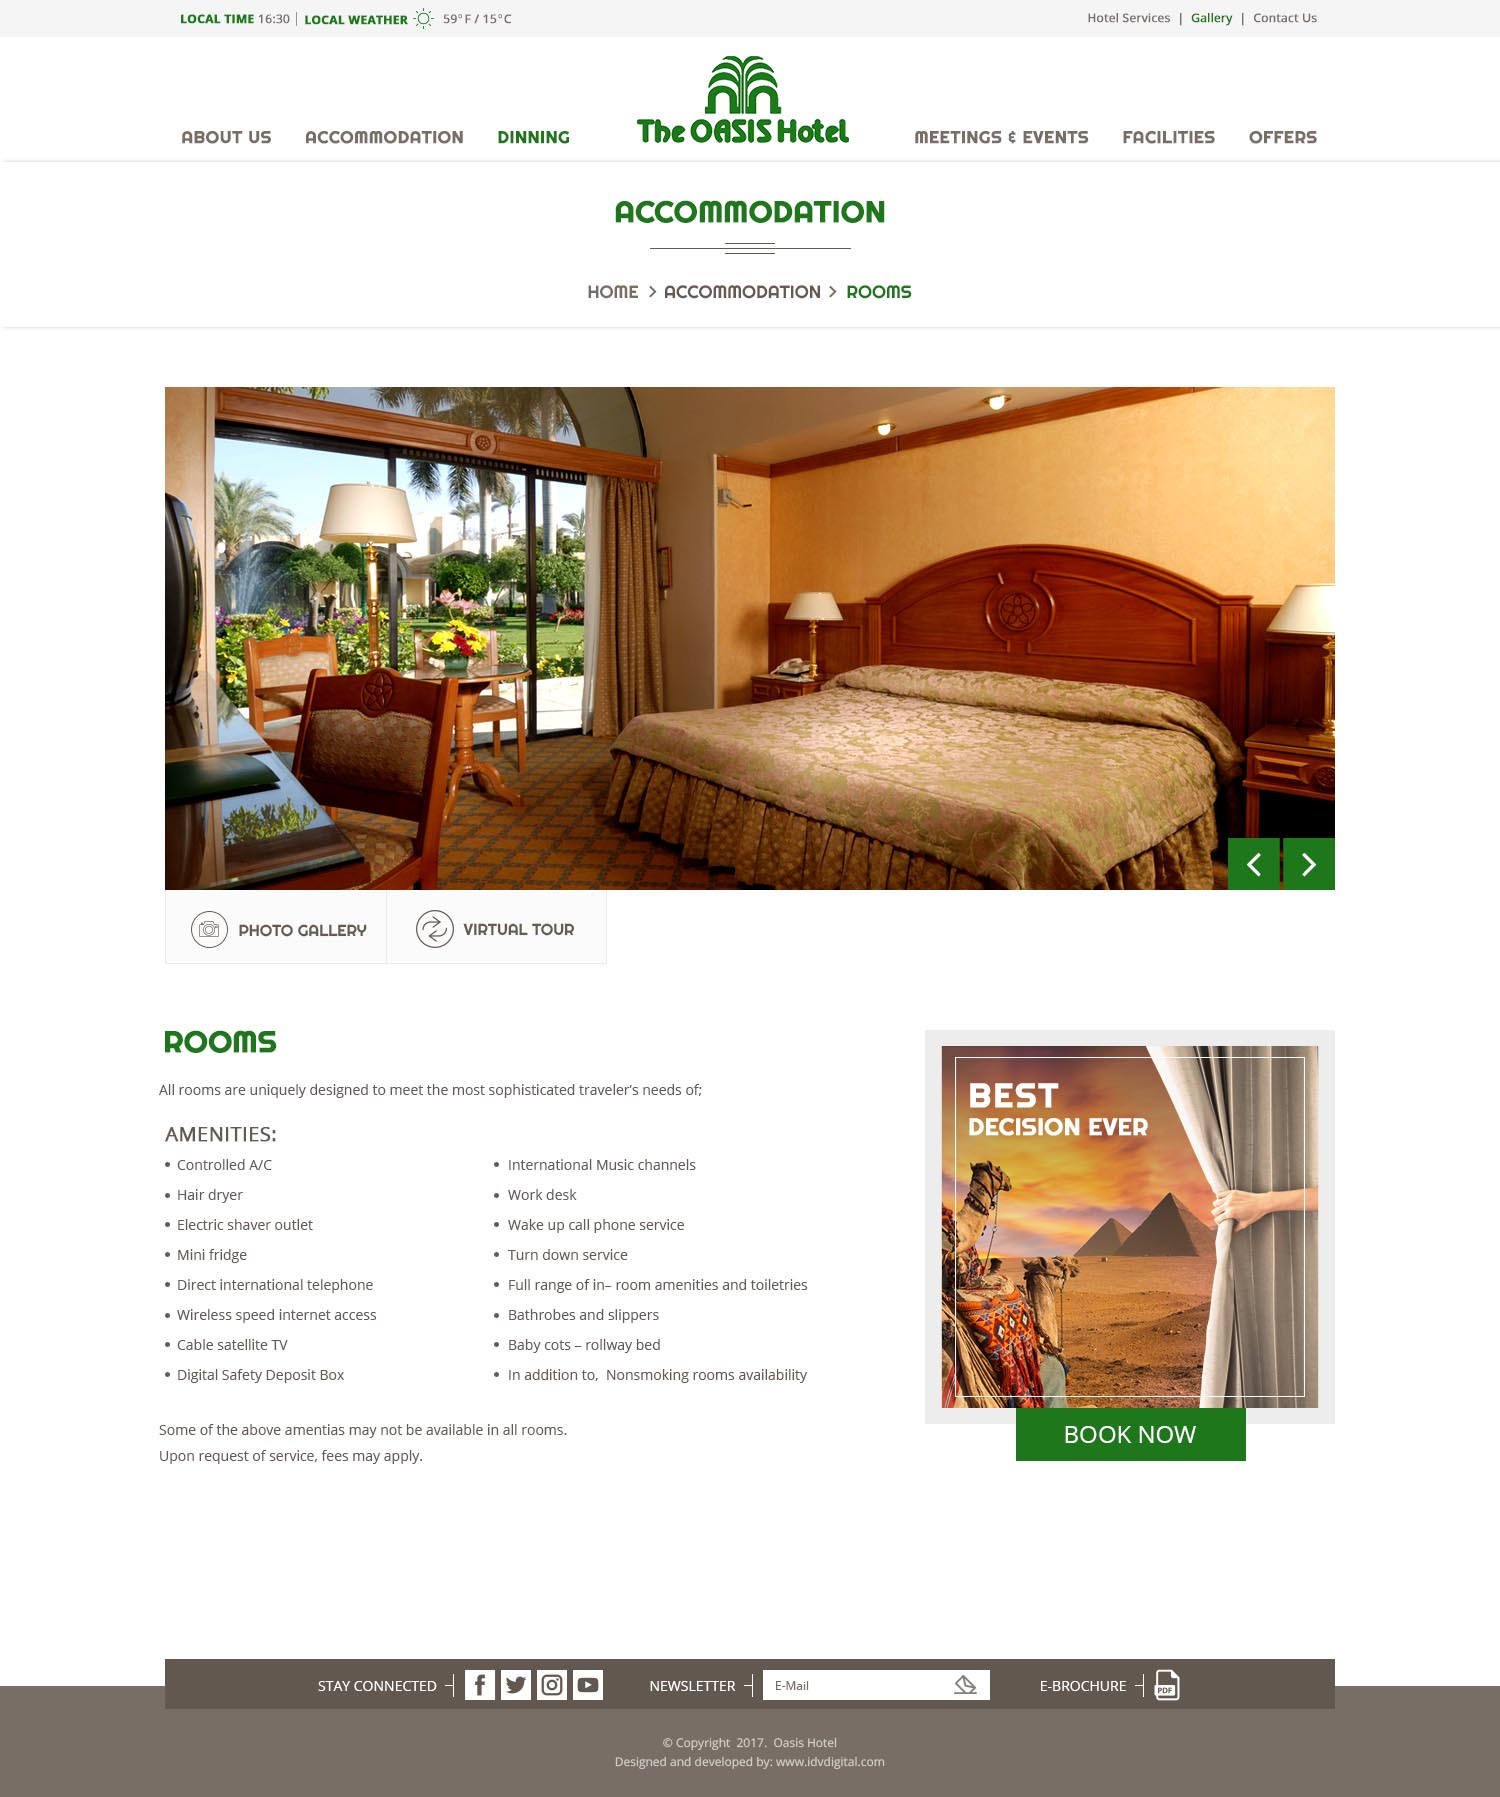 The Oasis Hotel - Accommodation